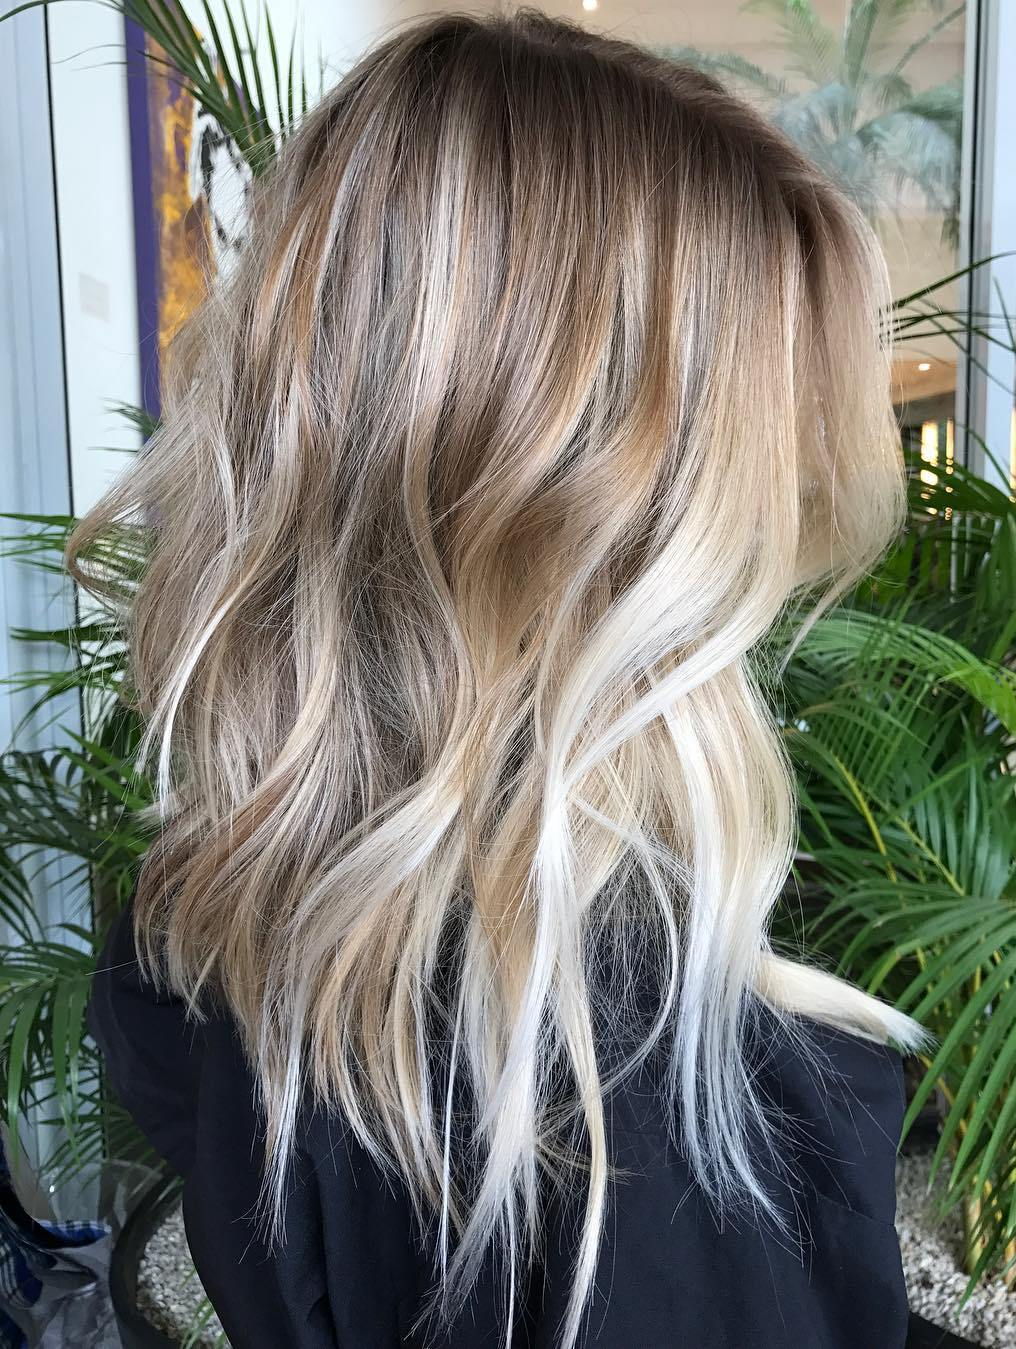 70 Balayage Hair Color Ideas with Blonde, Brown and Caramel